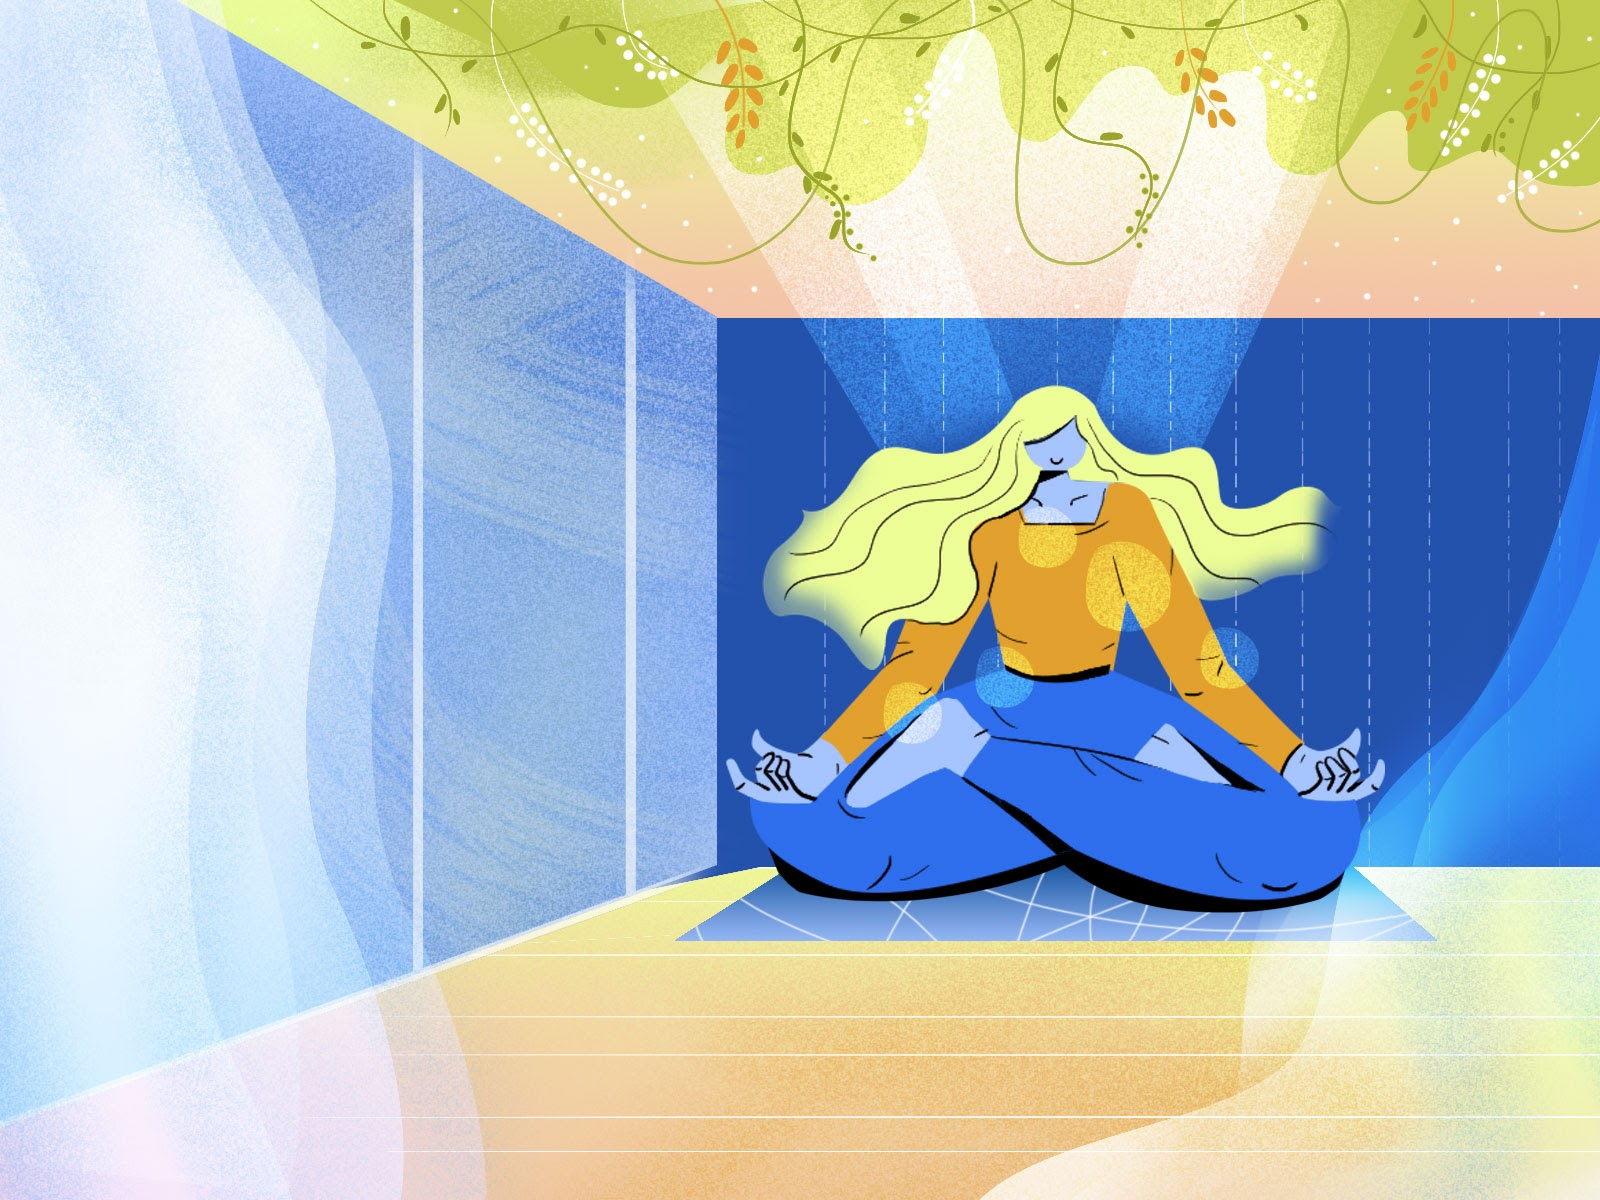 meditation increases concentration and boosts productivity